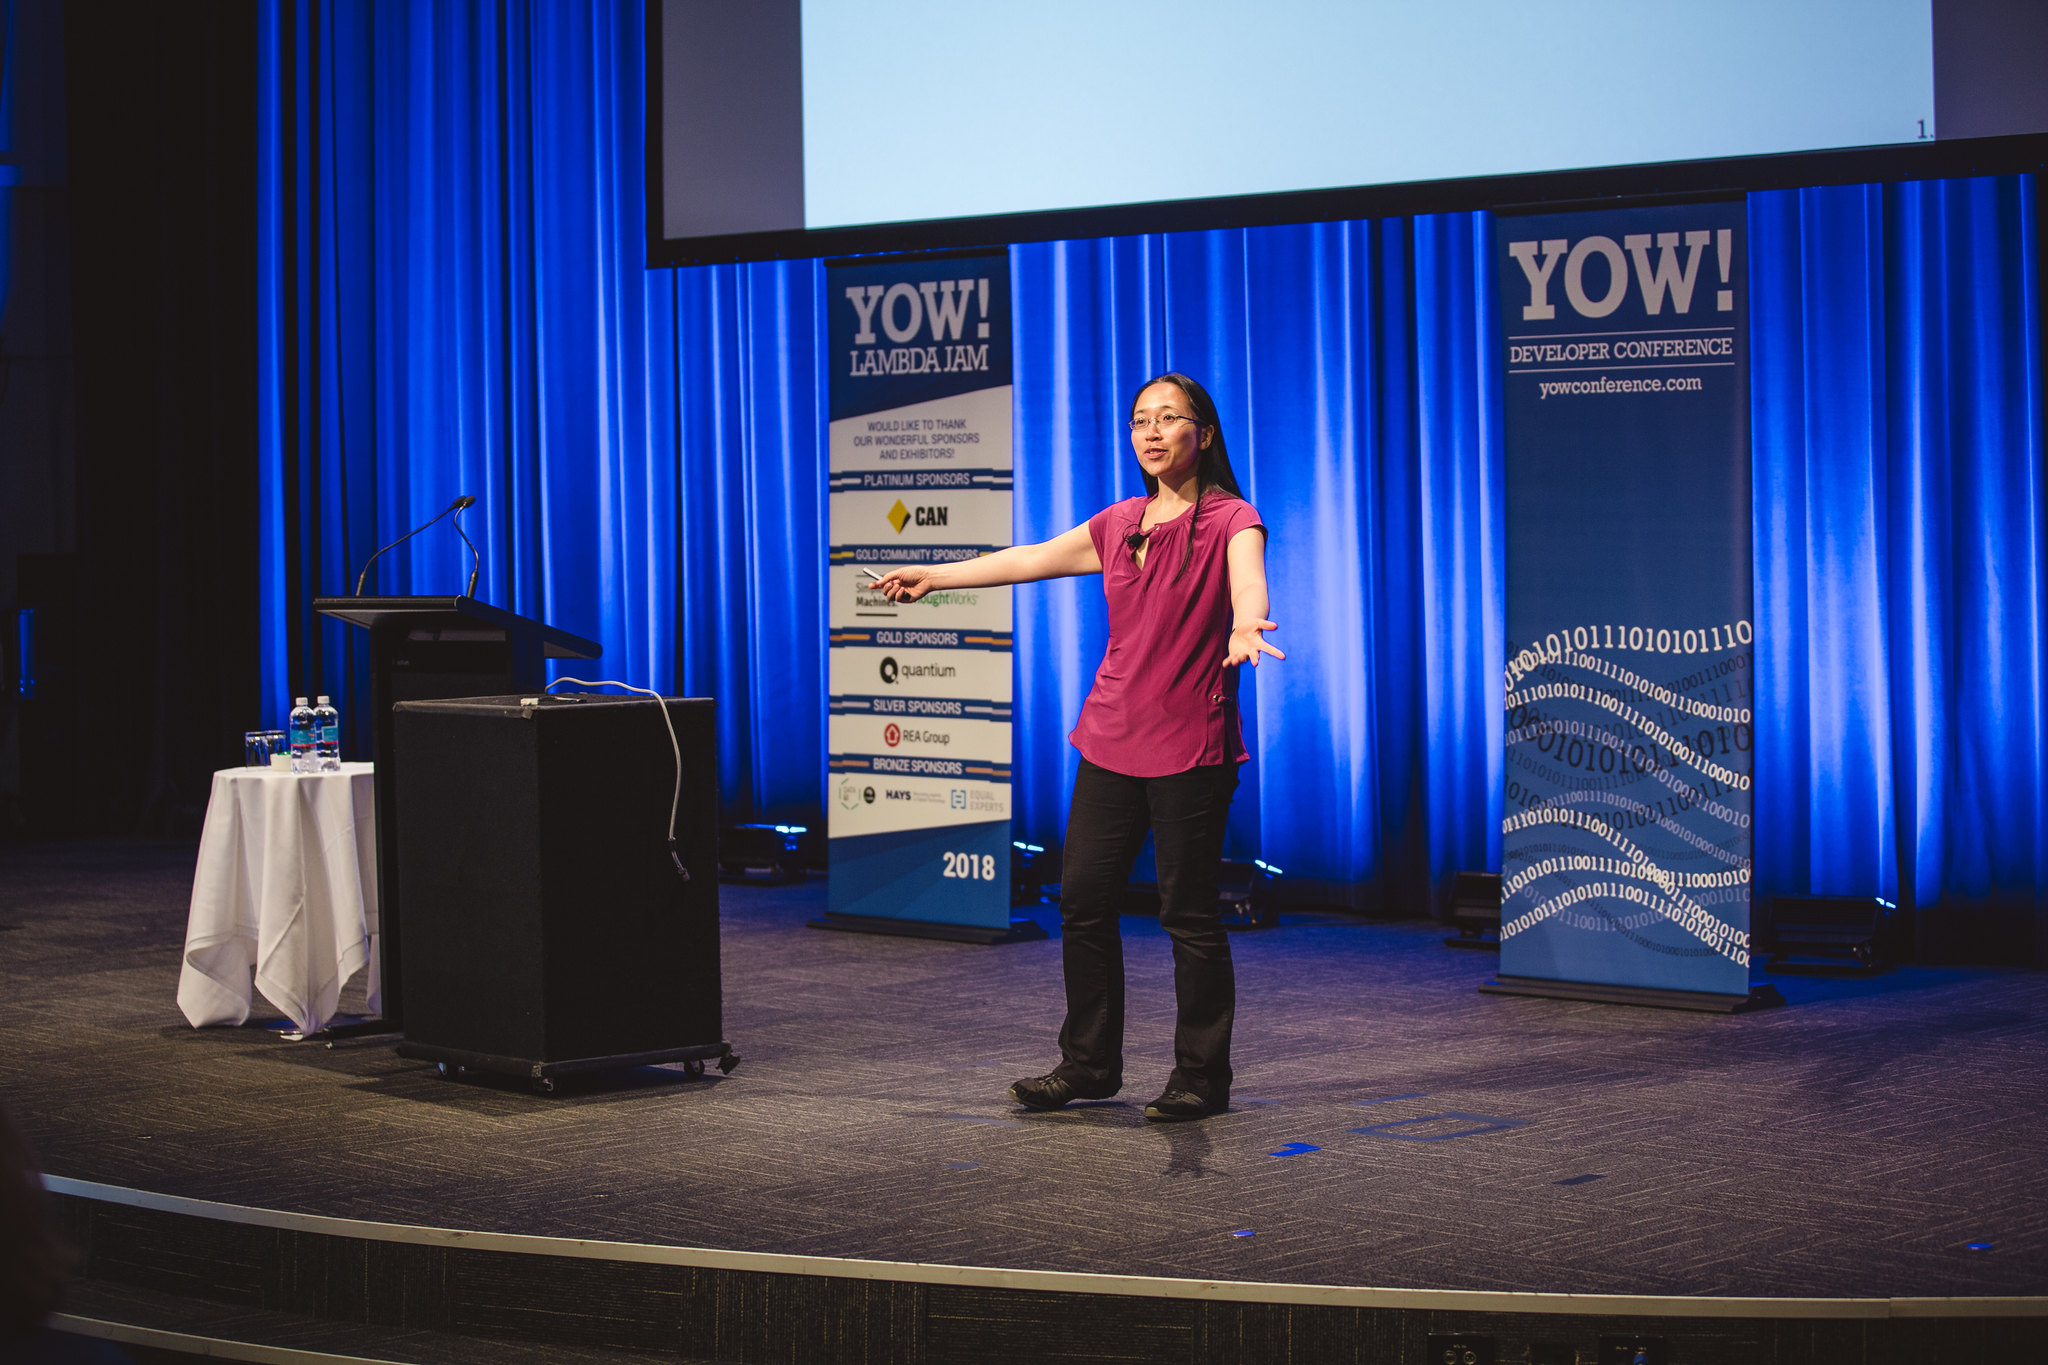 Eugenia Cheng on stage